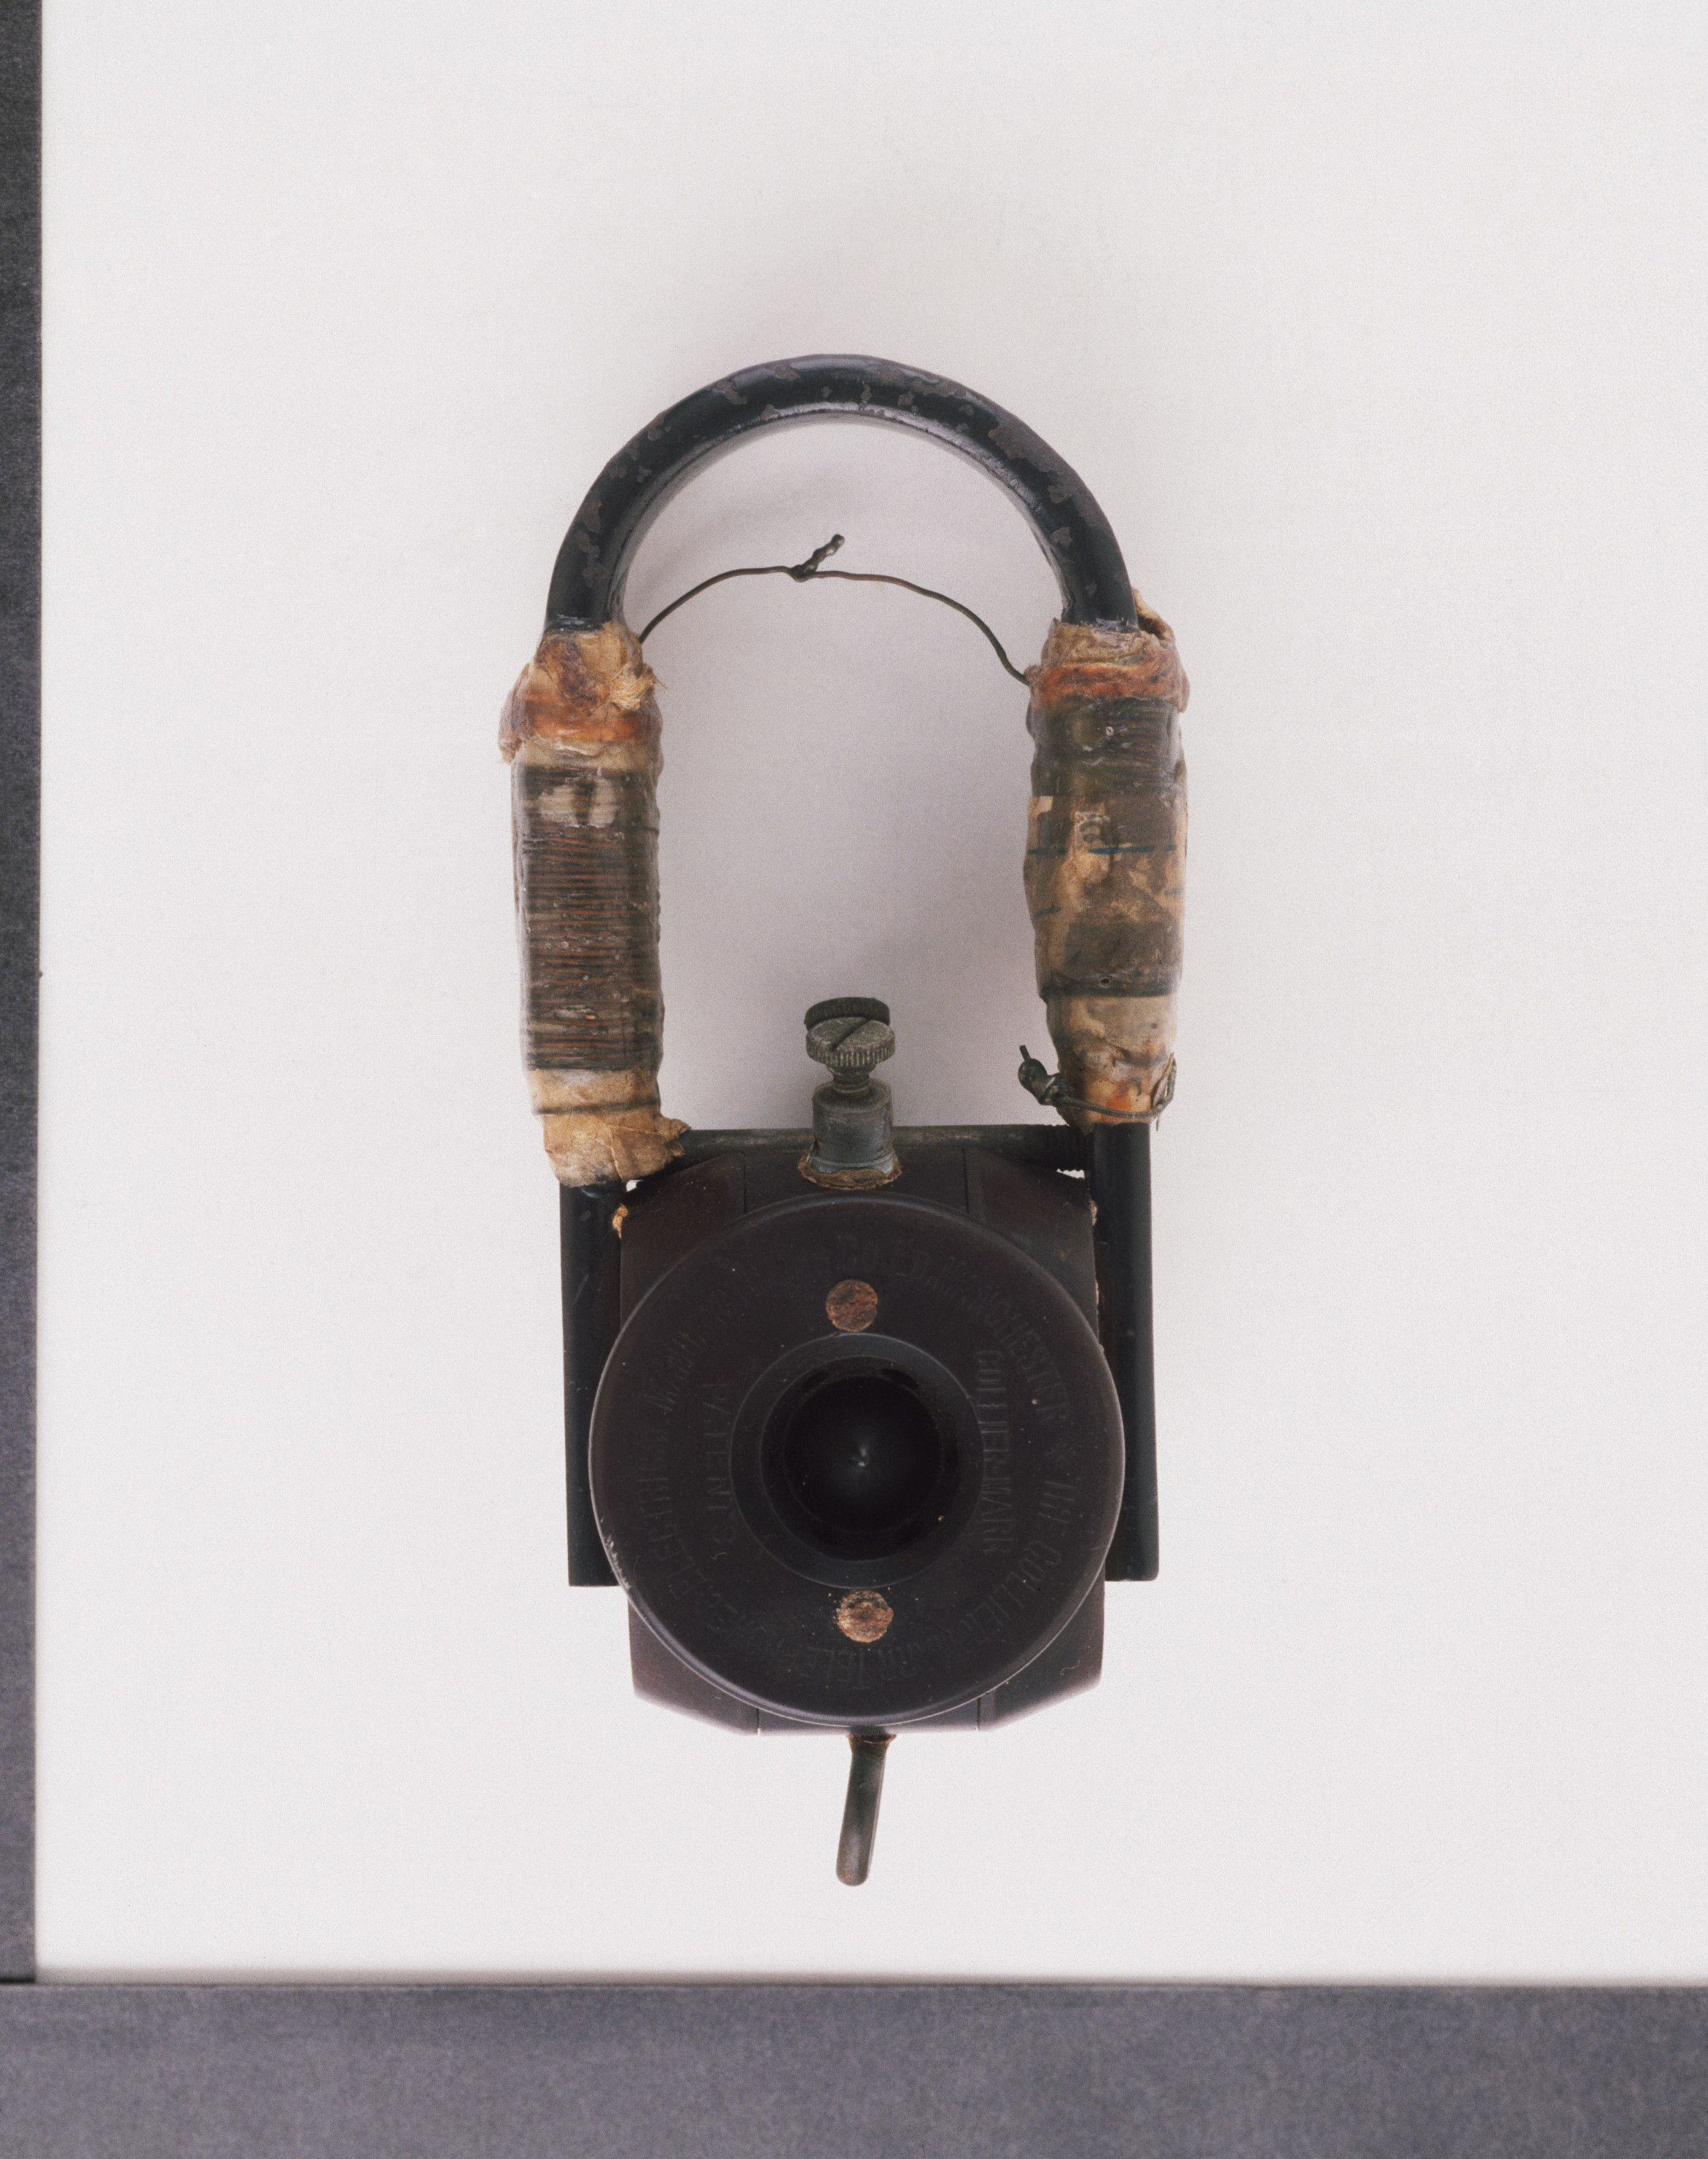 A receiver used by Guglielmo Marconi (18741937) in 1901